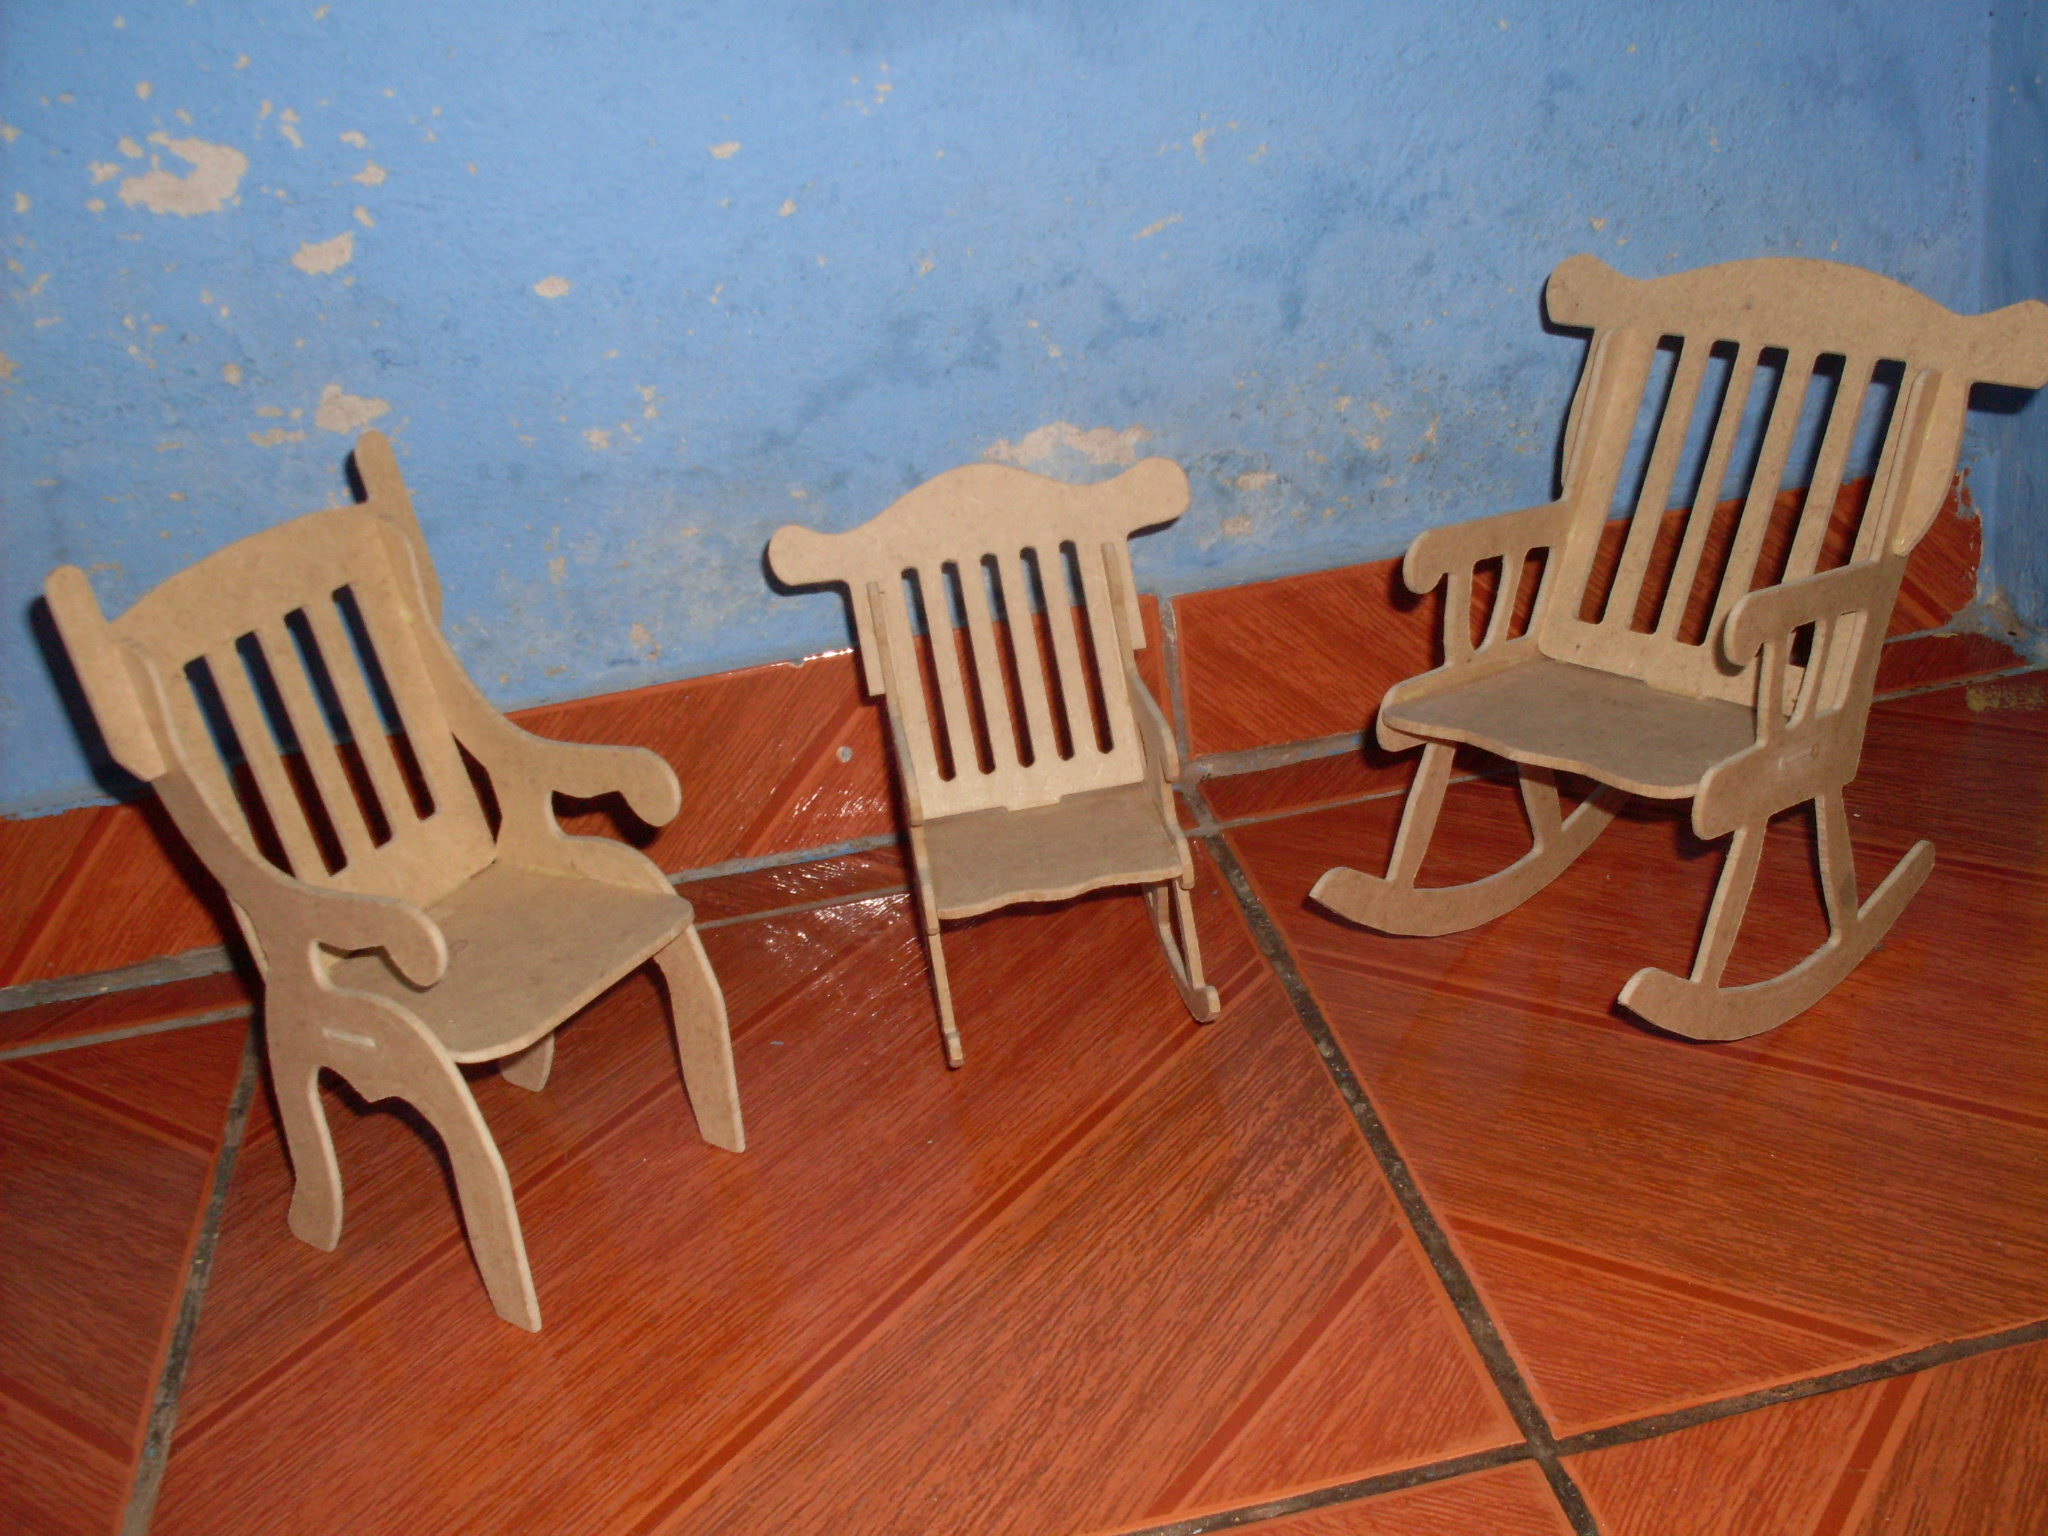 Chairs dxf File